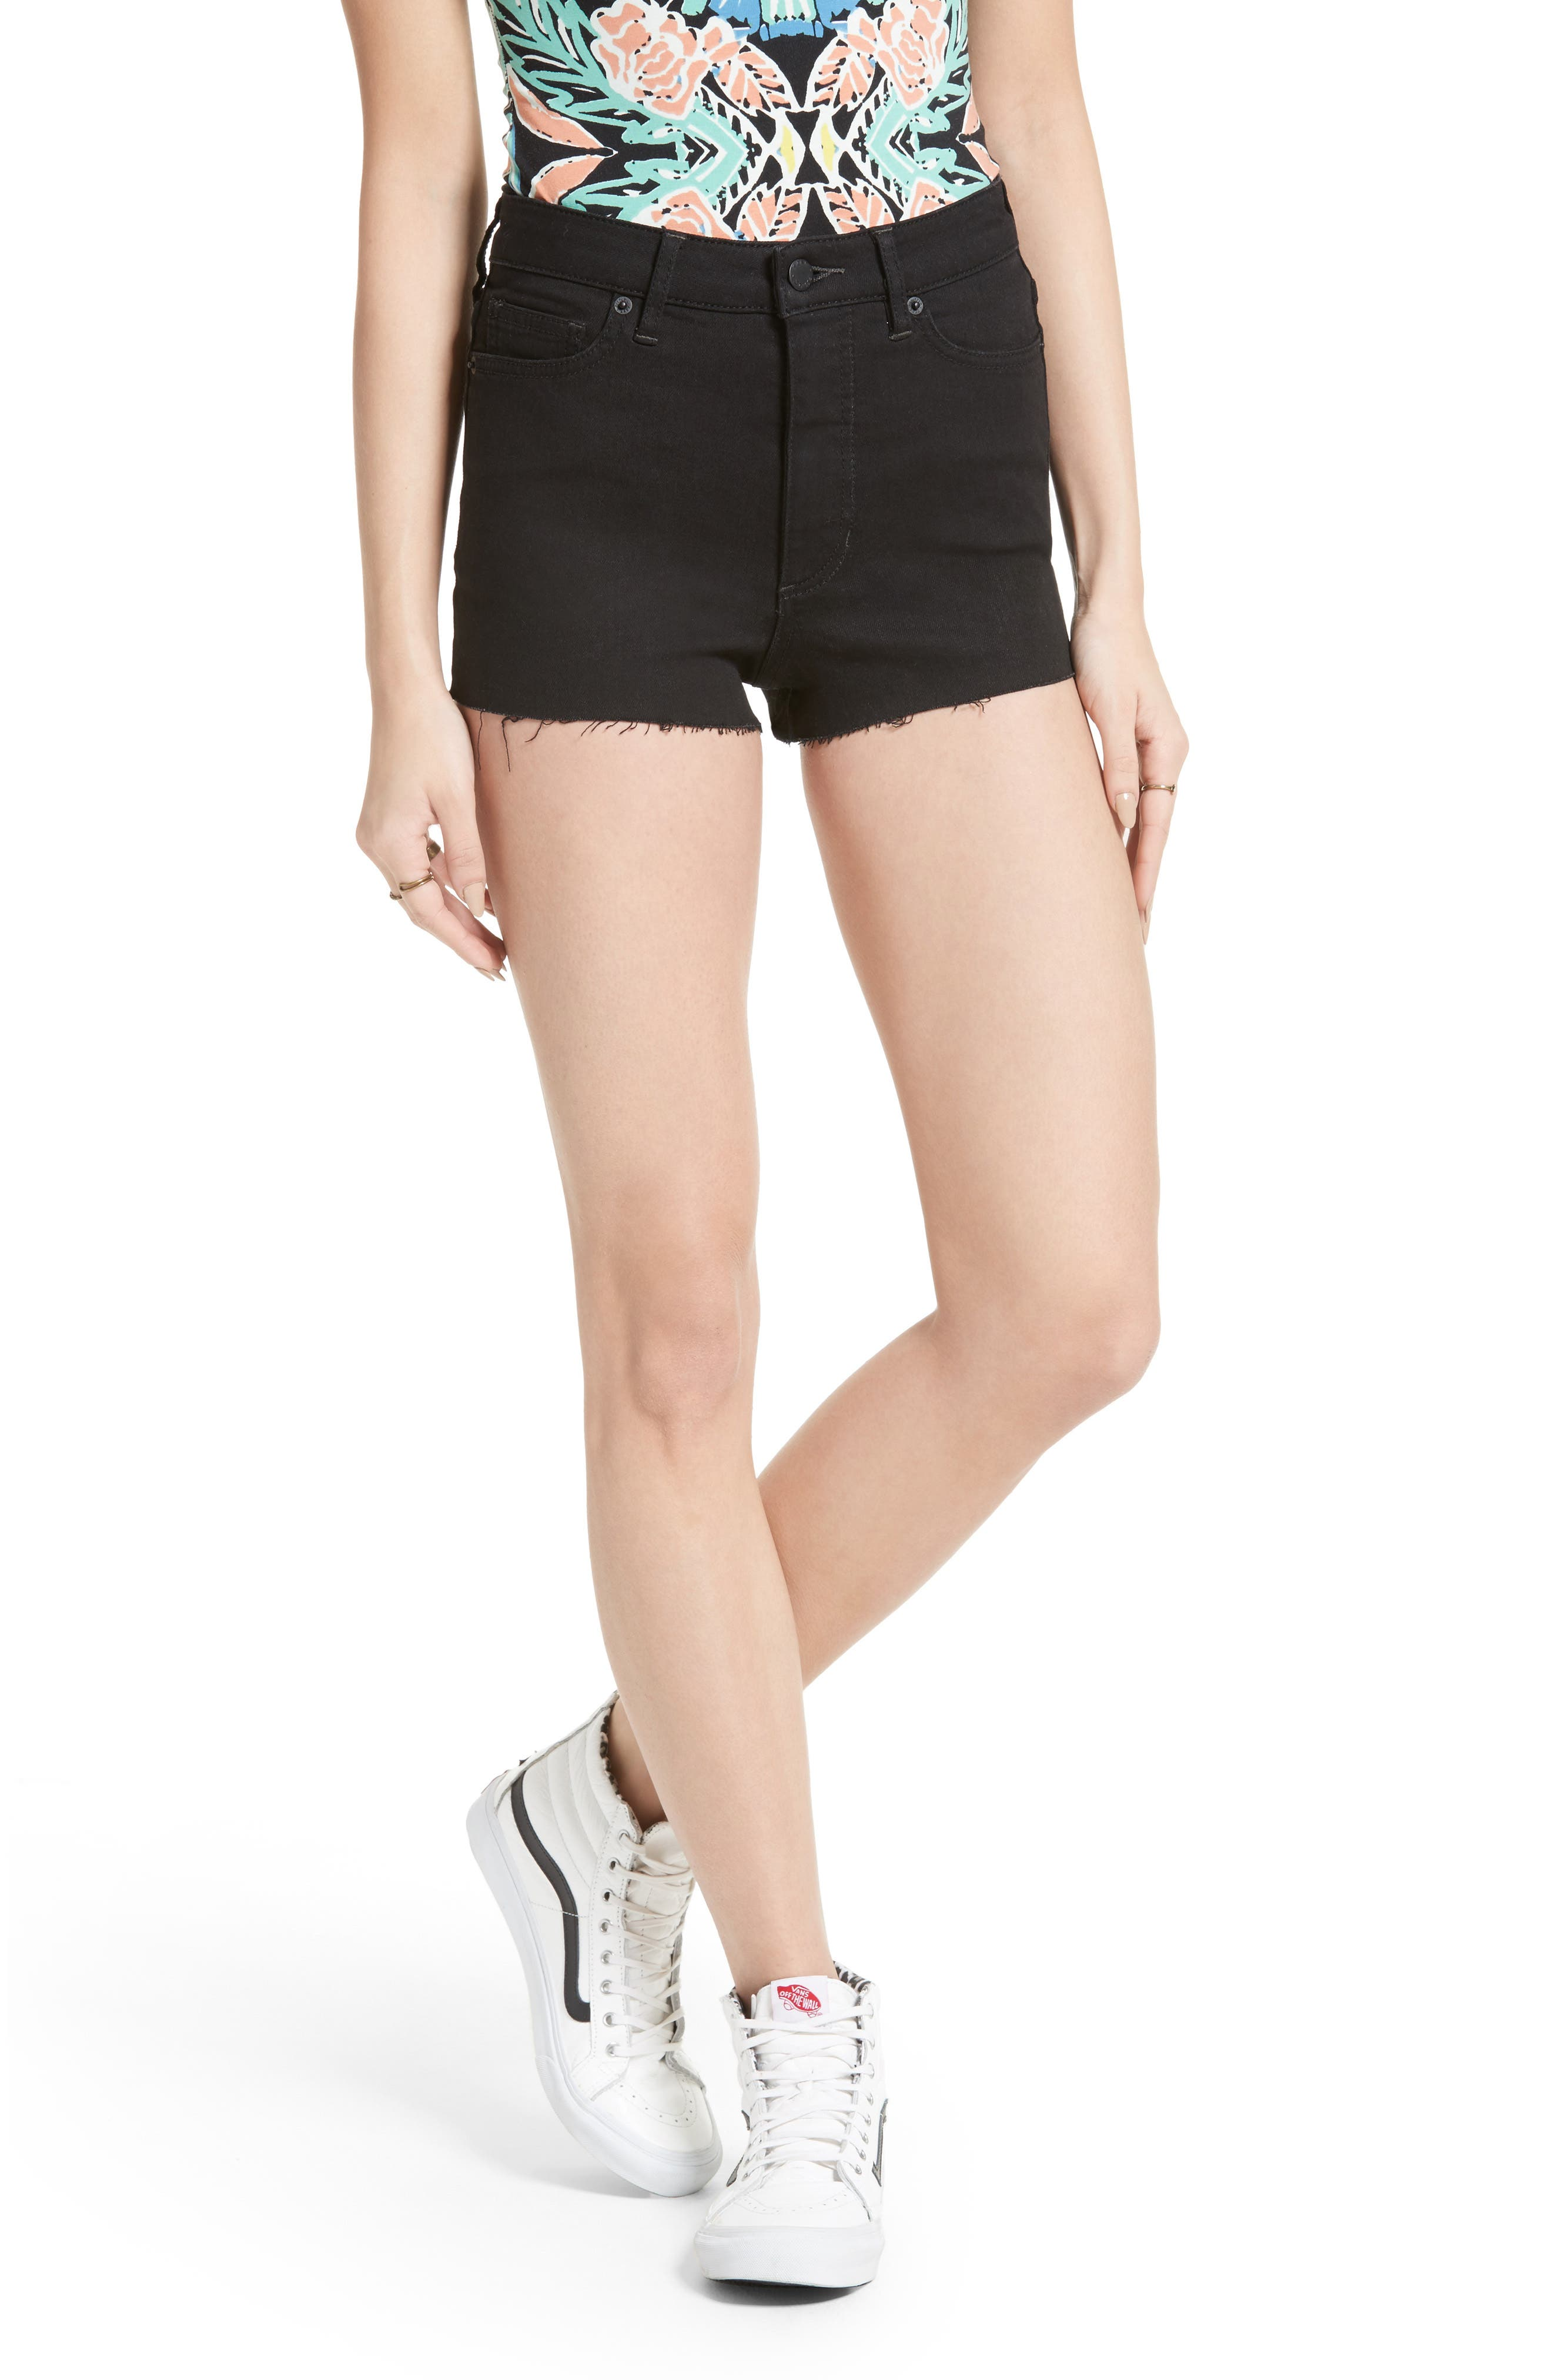 FREE PEOPLE High Rise Cutoff Shorts